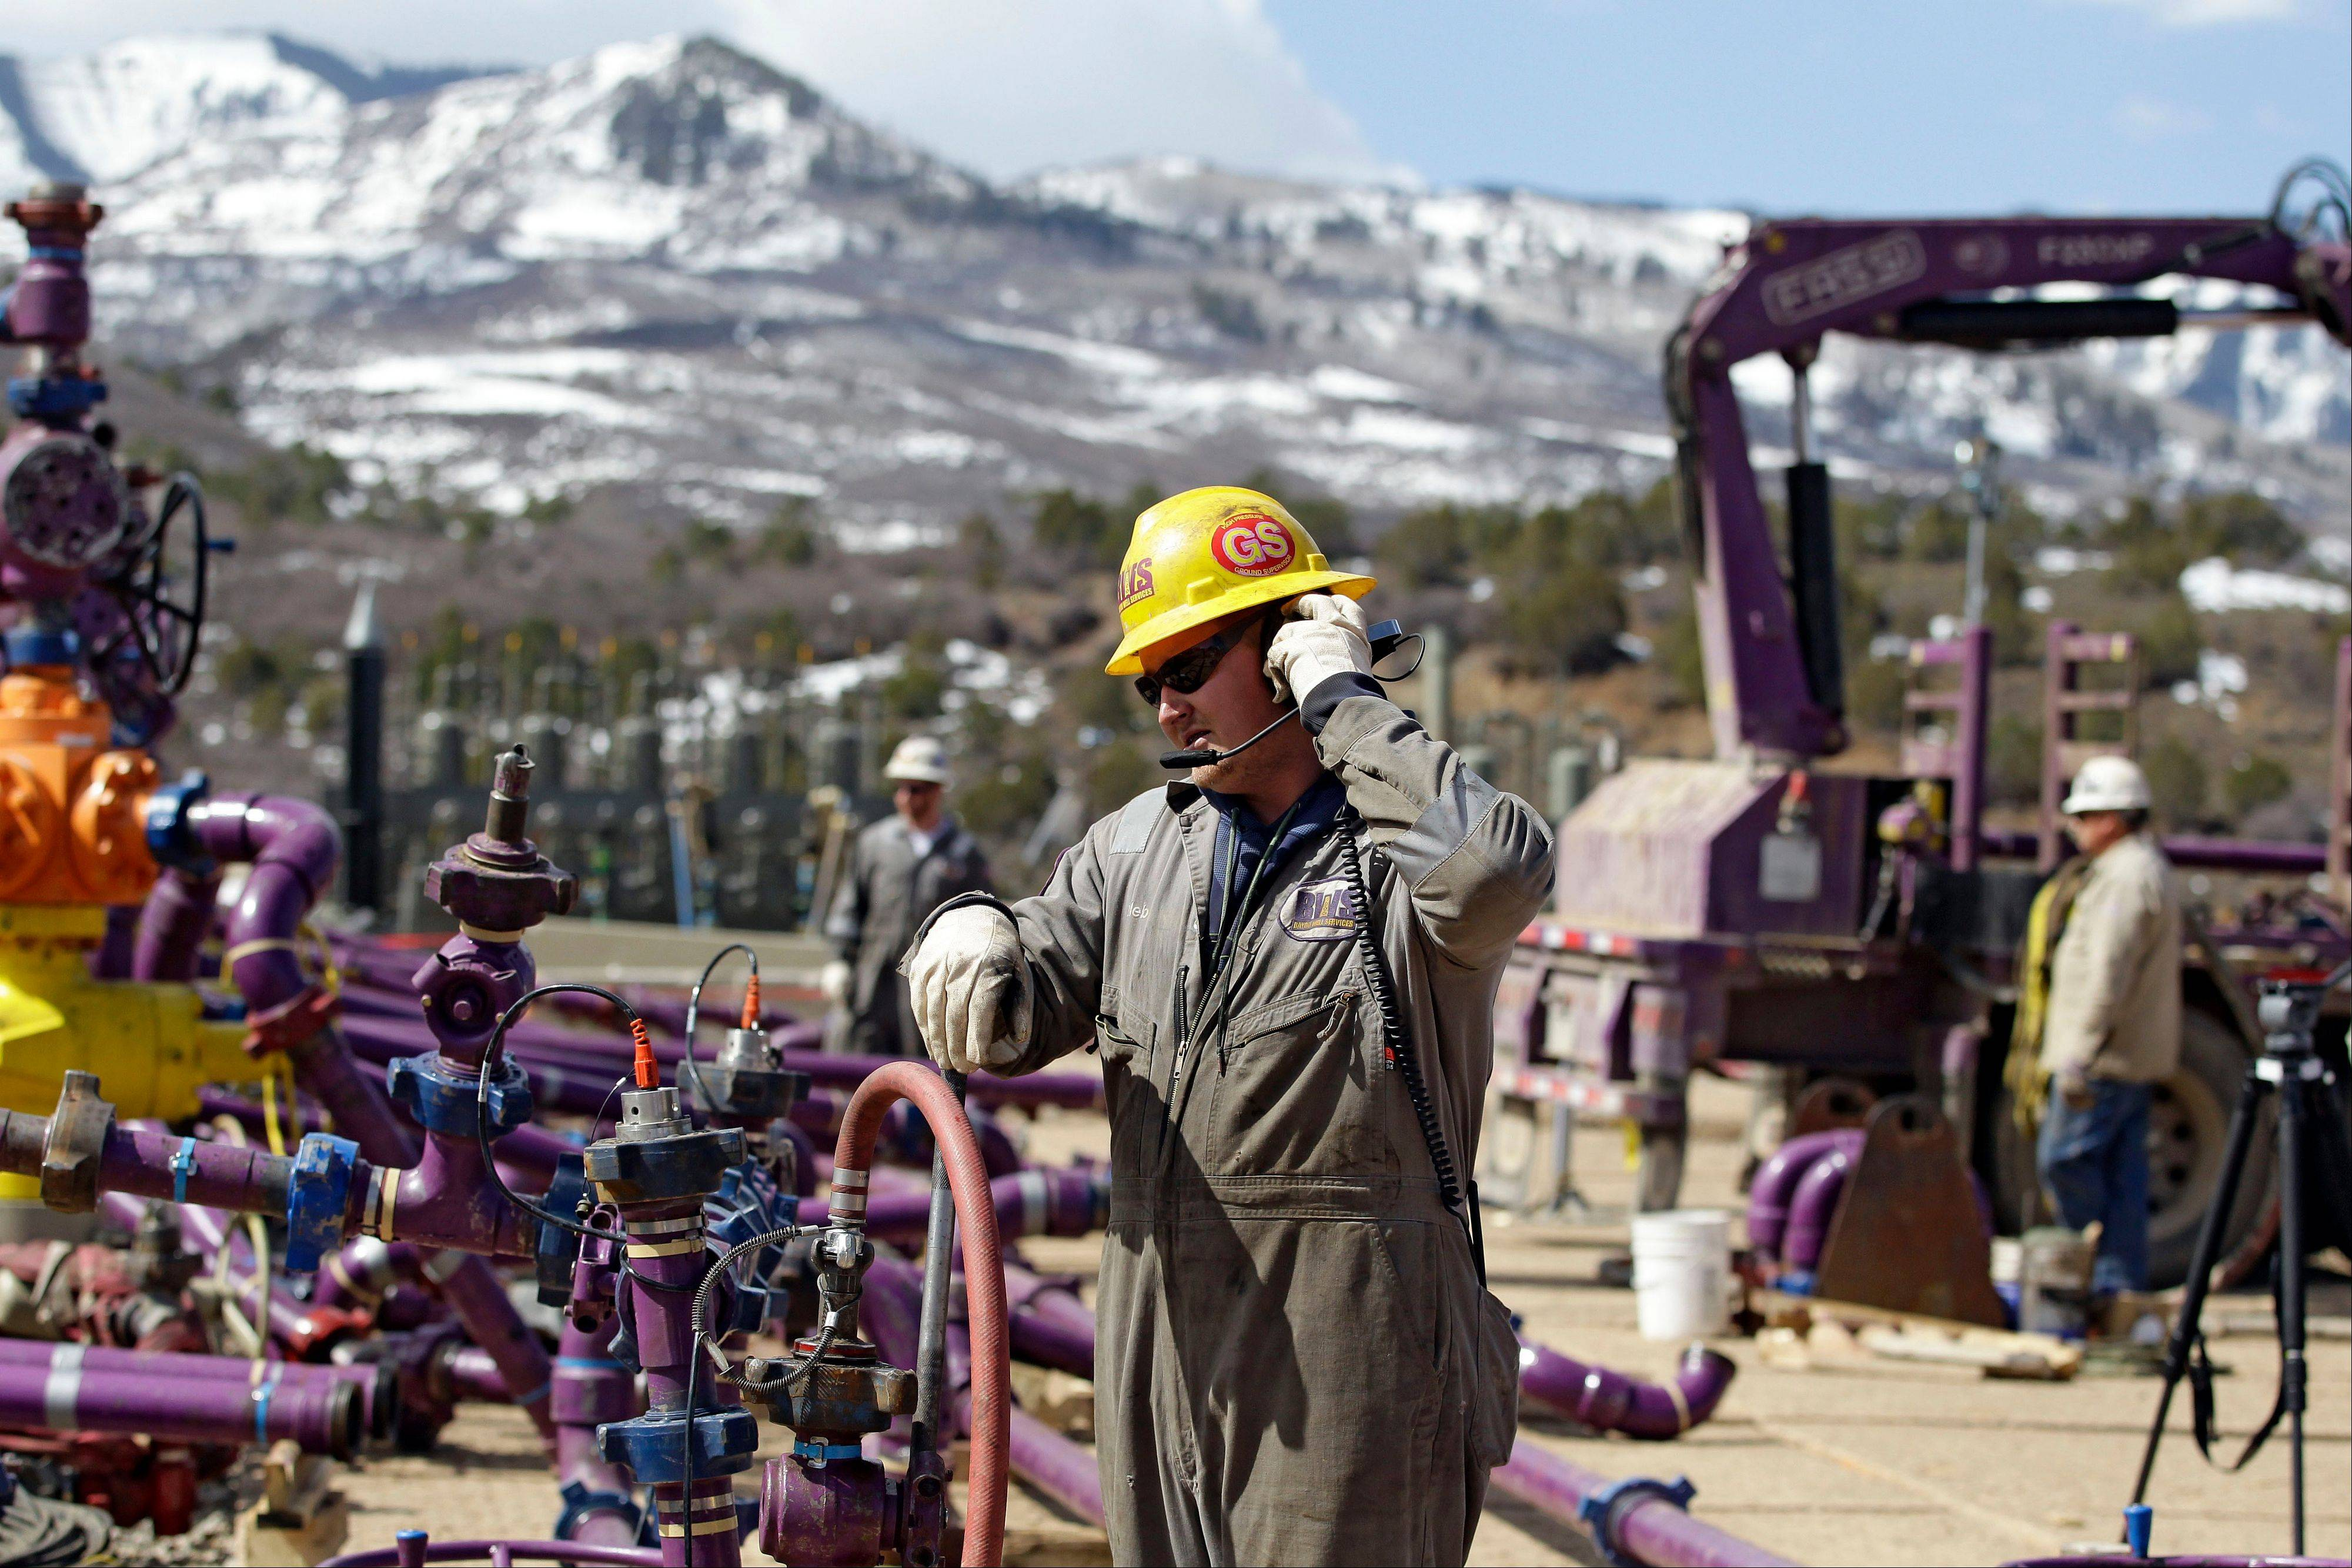 Associated Press/March 29, 2013 A worker uses a headset and microphone to communicate with coworkers over the din of pump trucks, at the site of a natural gas hydraulic fracturing and extraction operation run by the Encana Oil & Gas (USA) Inc., outside Rifle, in western Colorado.